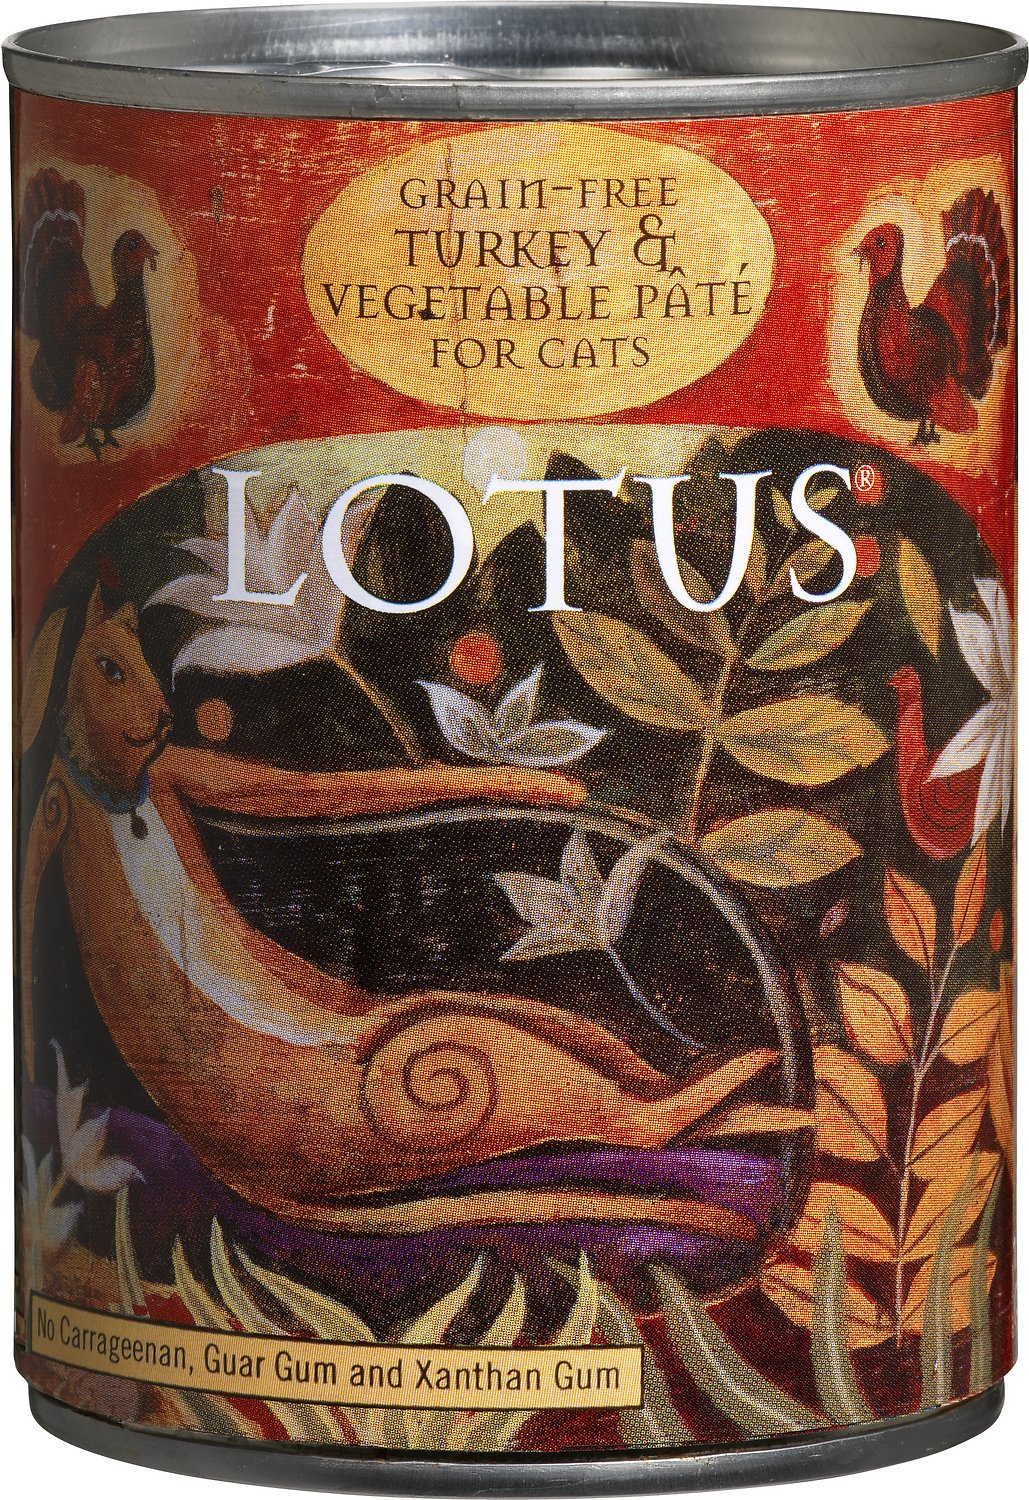 Lotus Turkey & Vegetable Pate Grain-Free Canned Cat Food